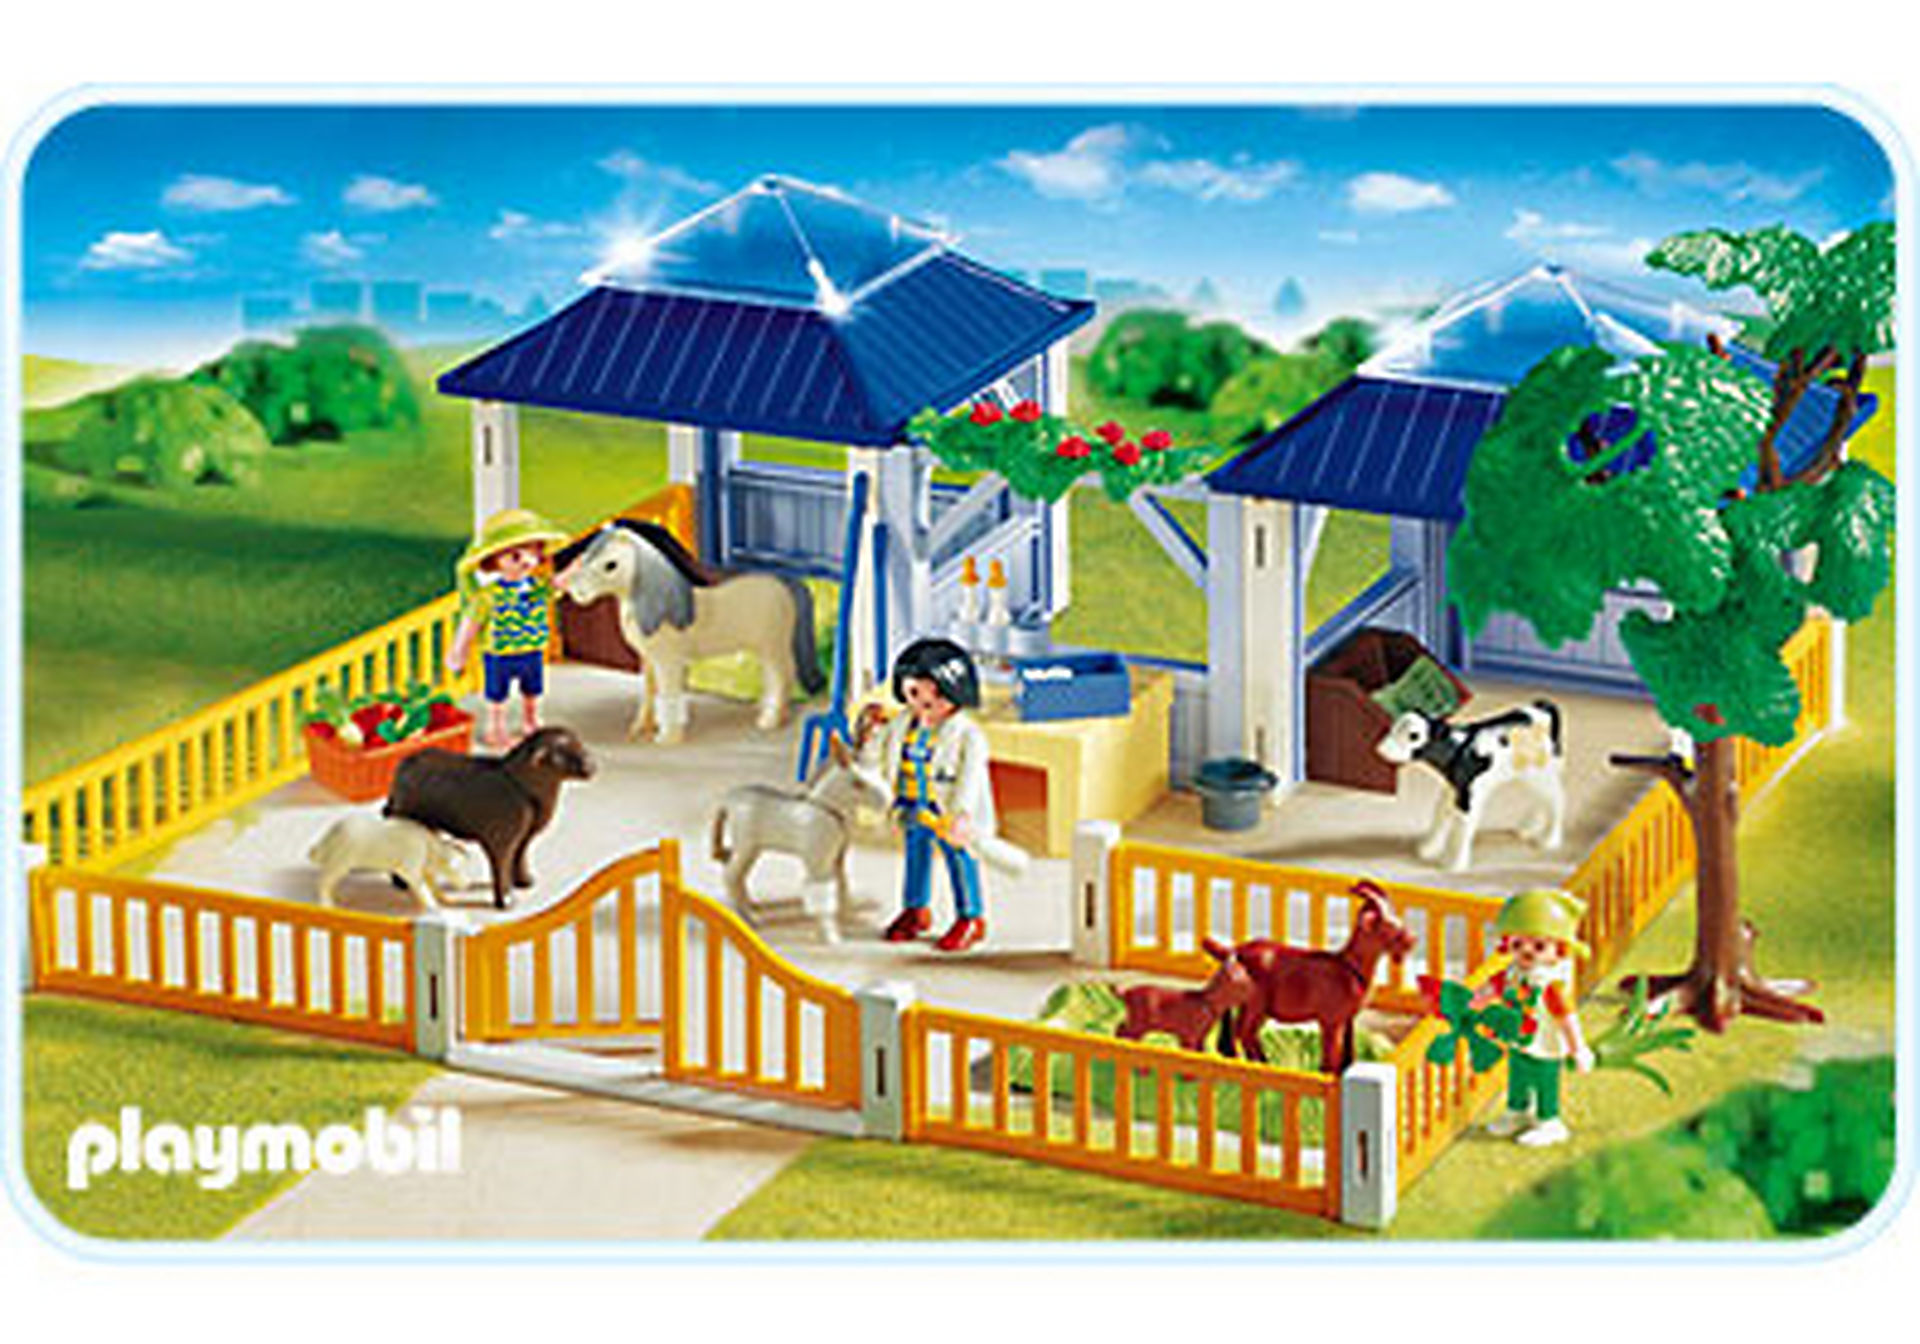 http://media.playmobil.com/i/playmobil/4344-A_product_detail/Centre de soins animalier